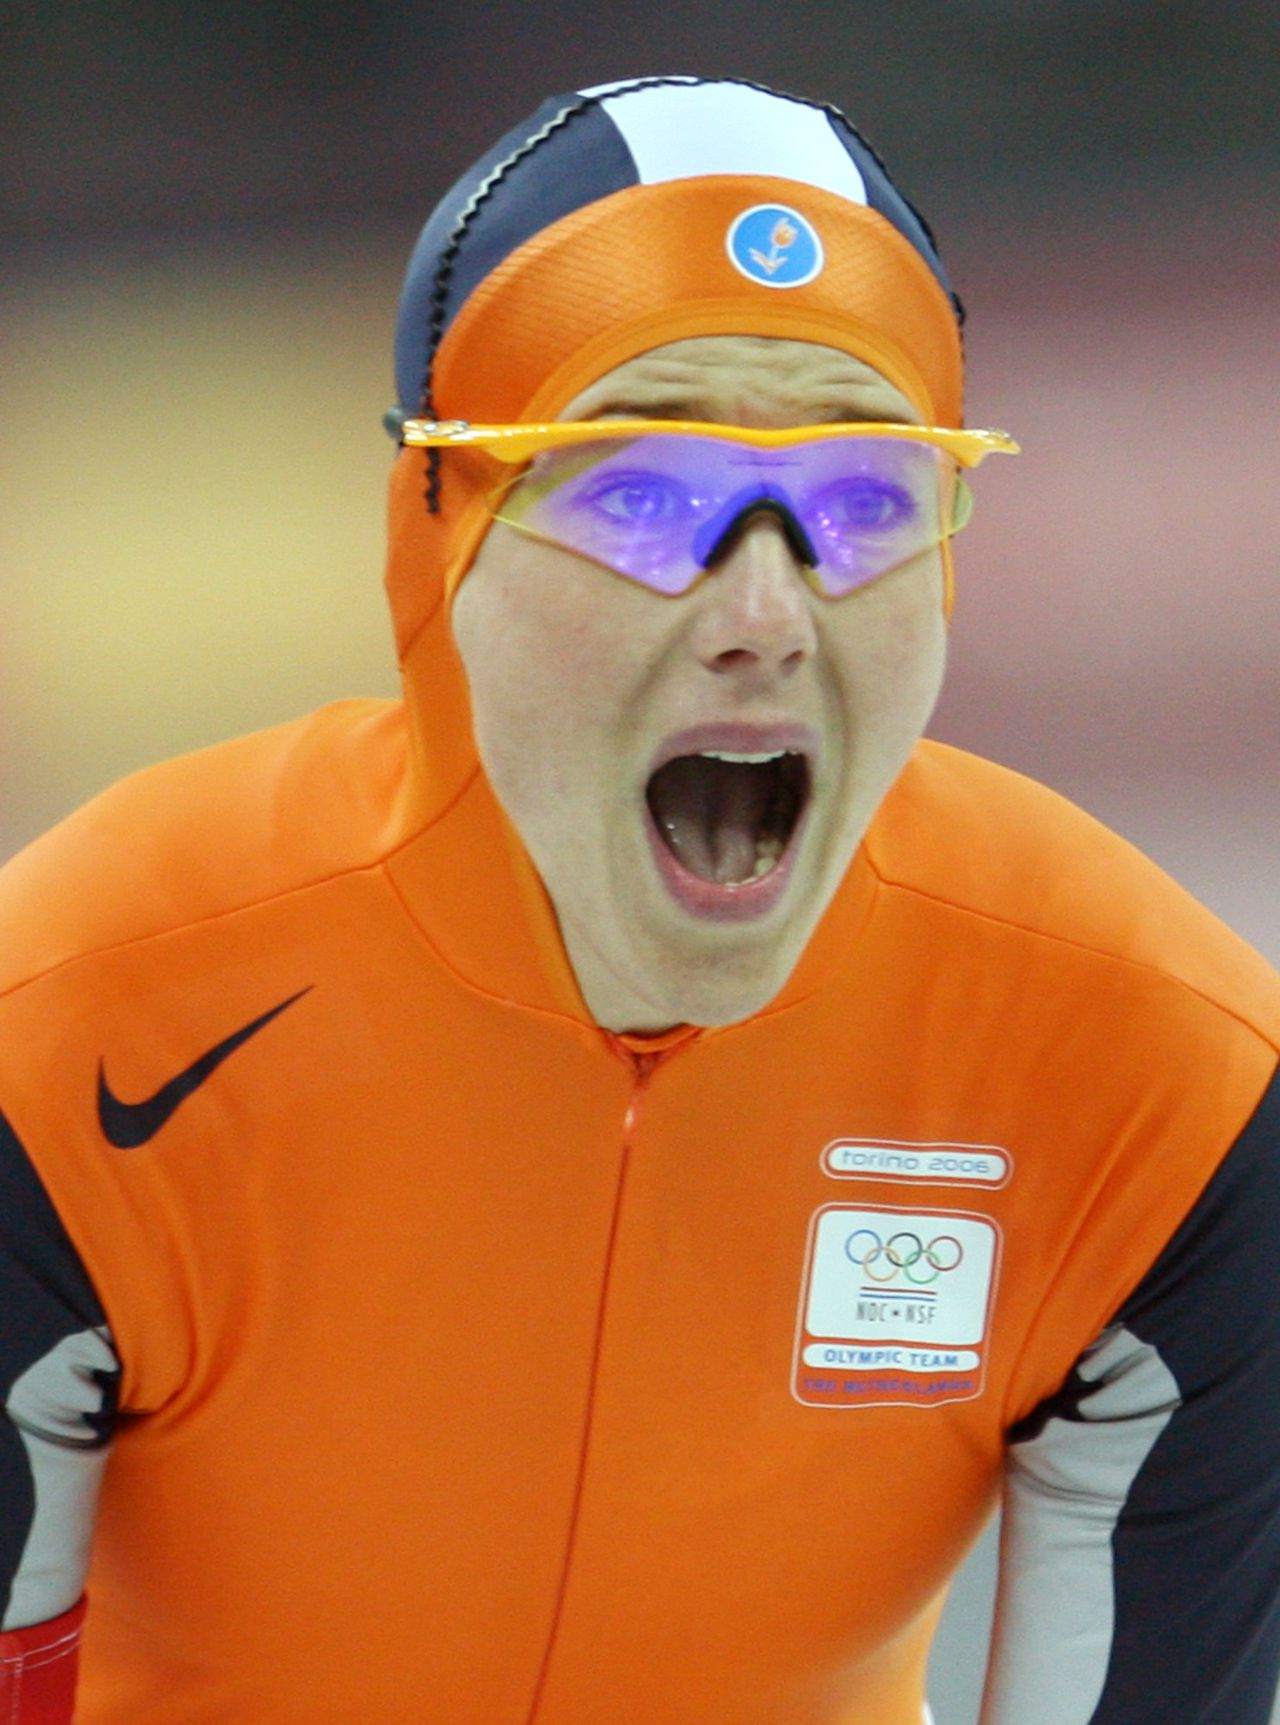 Marianne Timmer of The Netherlands reacts after her race in the Ladies' 1000m speed skating competition during the 2006 Winter Olympics 19 February 2006, at the Oval Lingotto in Turin. Timmer clocked 1:16.05. AFP PHOTO/TORSTEN SILZ